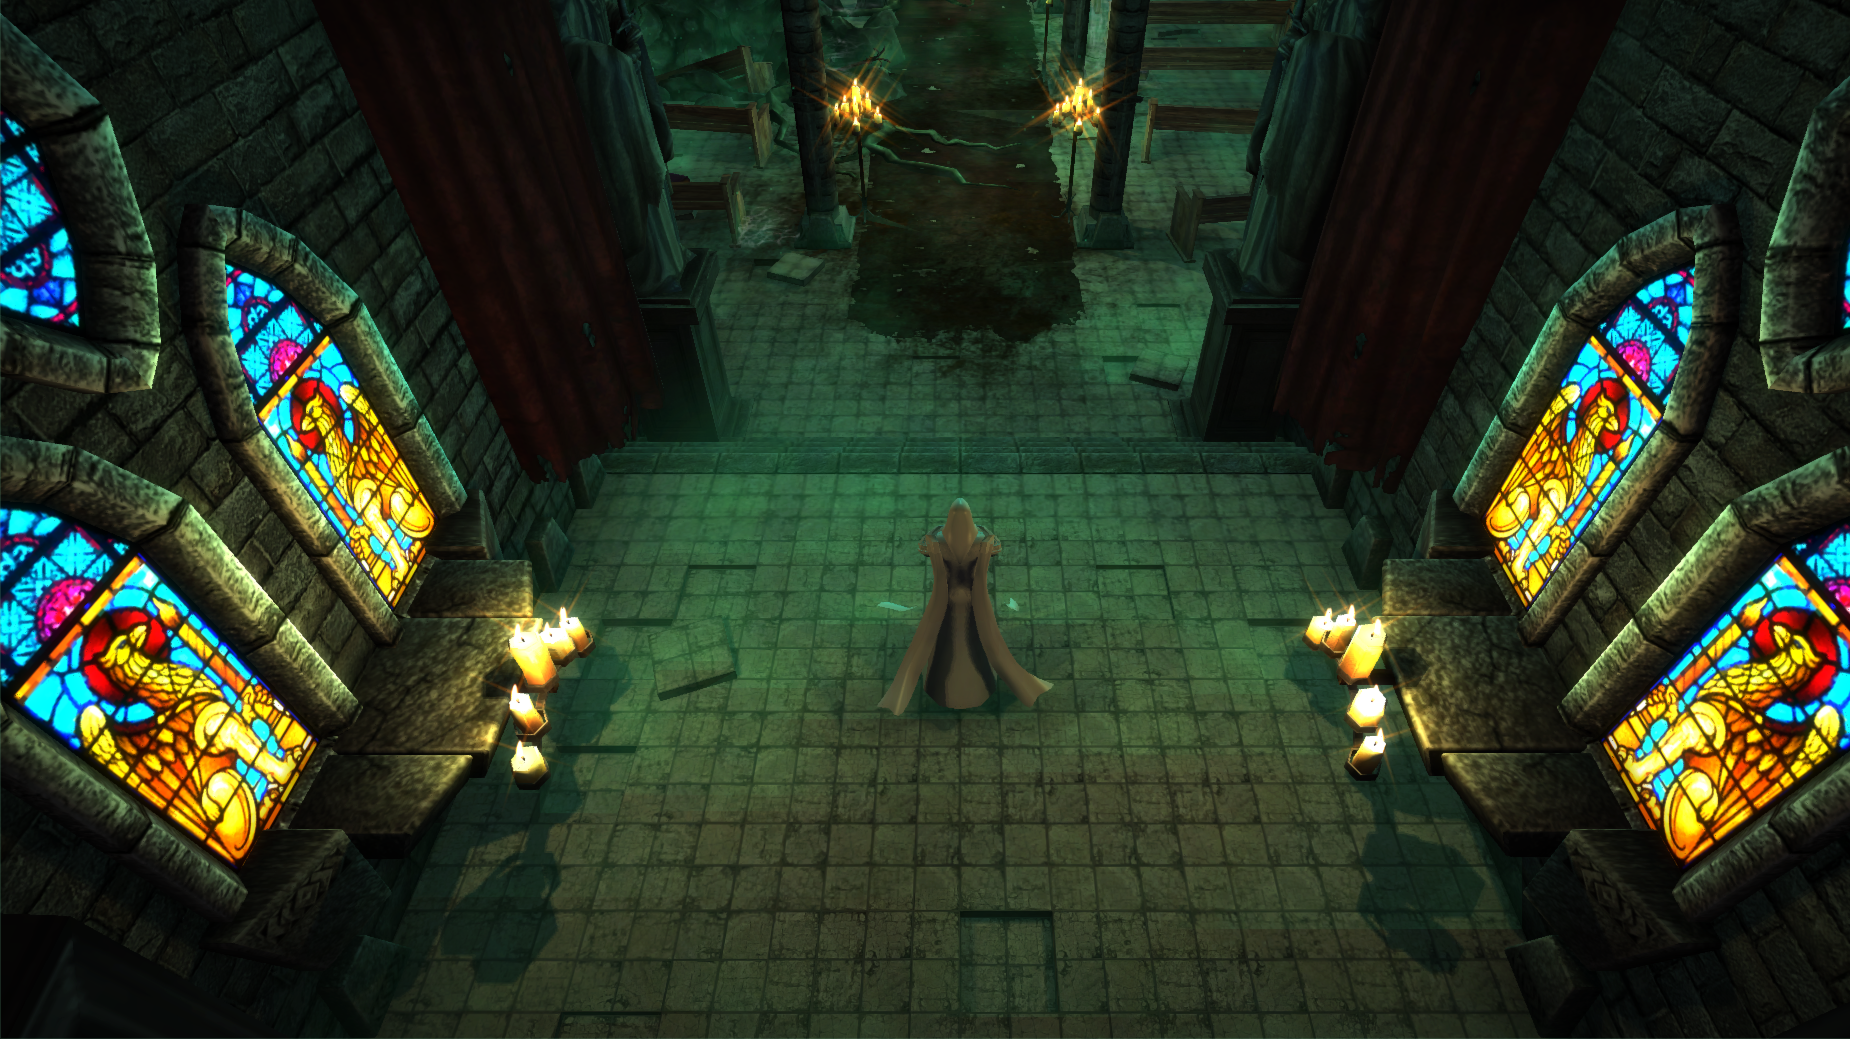 throne room game character came